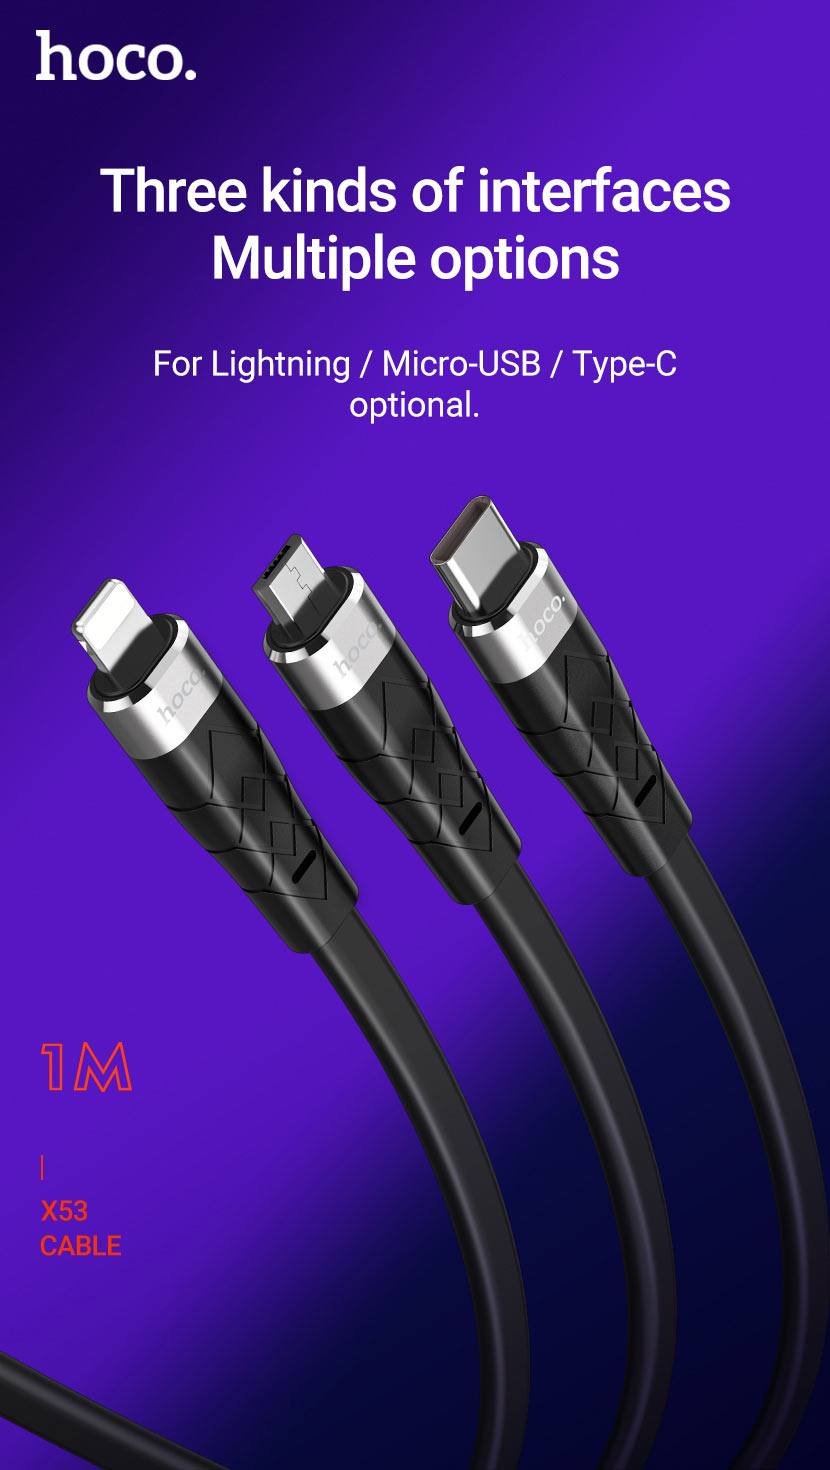 hoco news x53 angel silicone charging data cable interfaces en